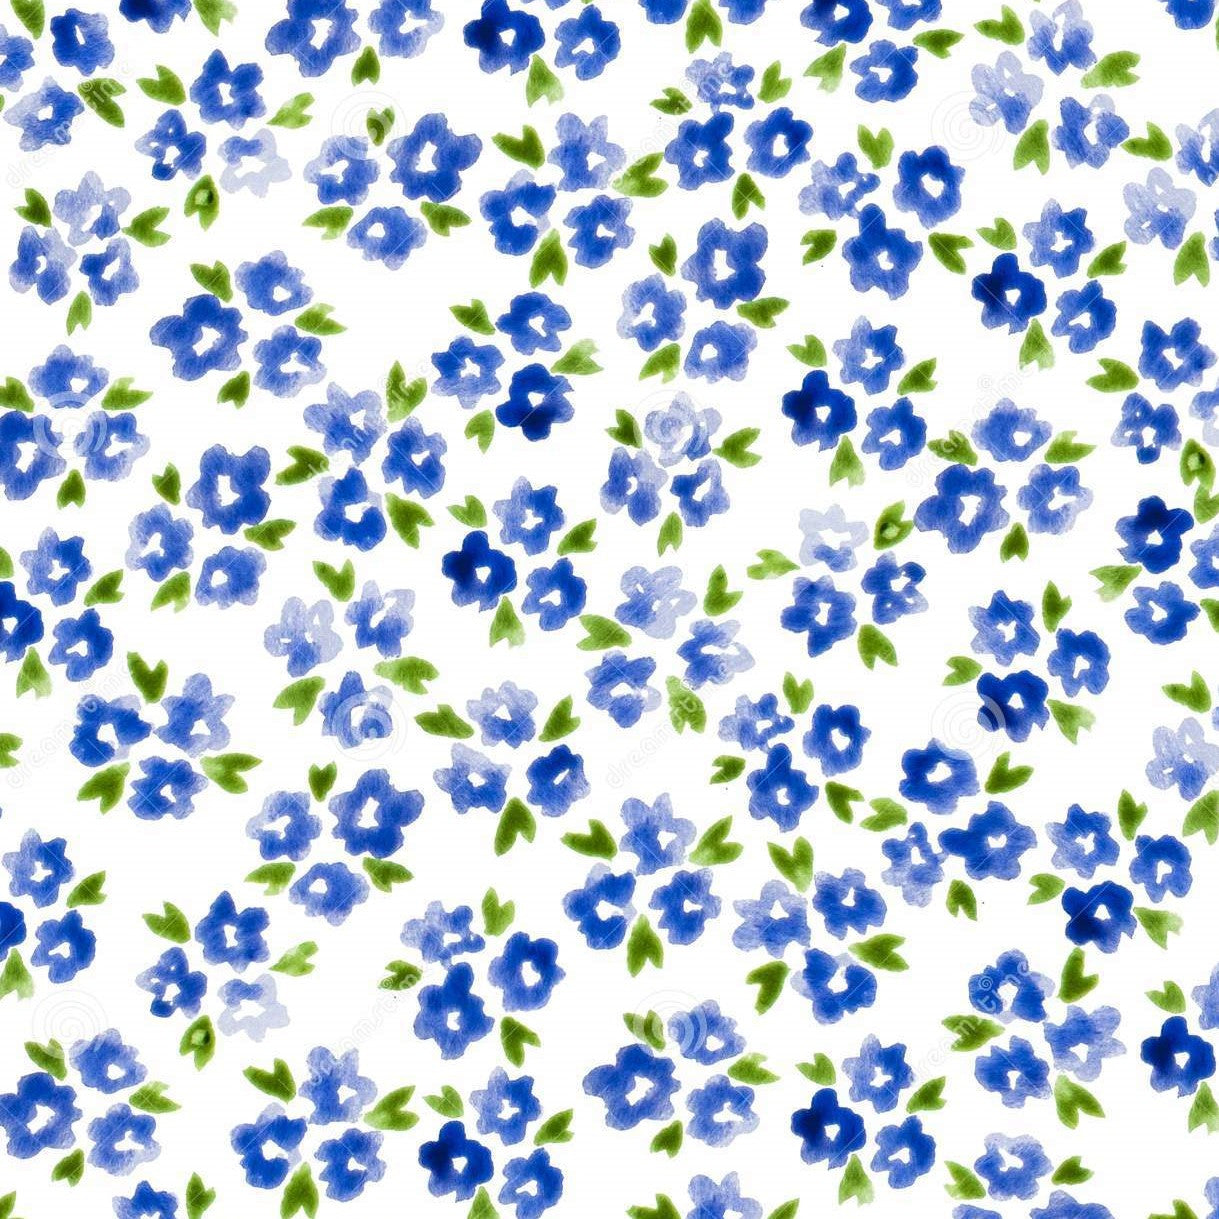 Calico Floral Pattern